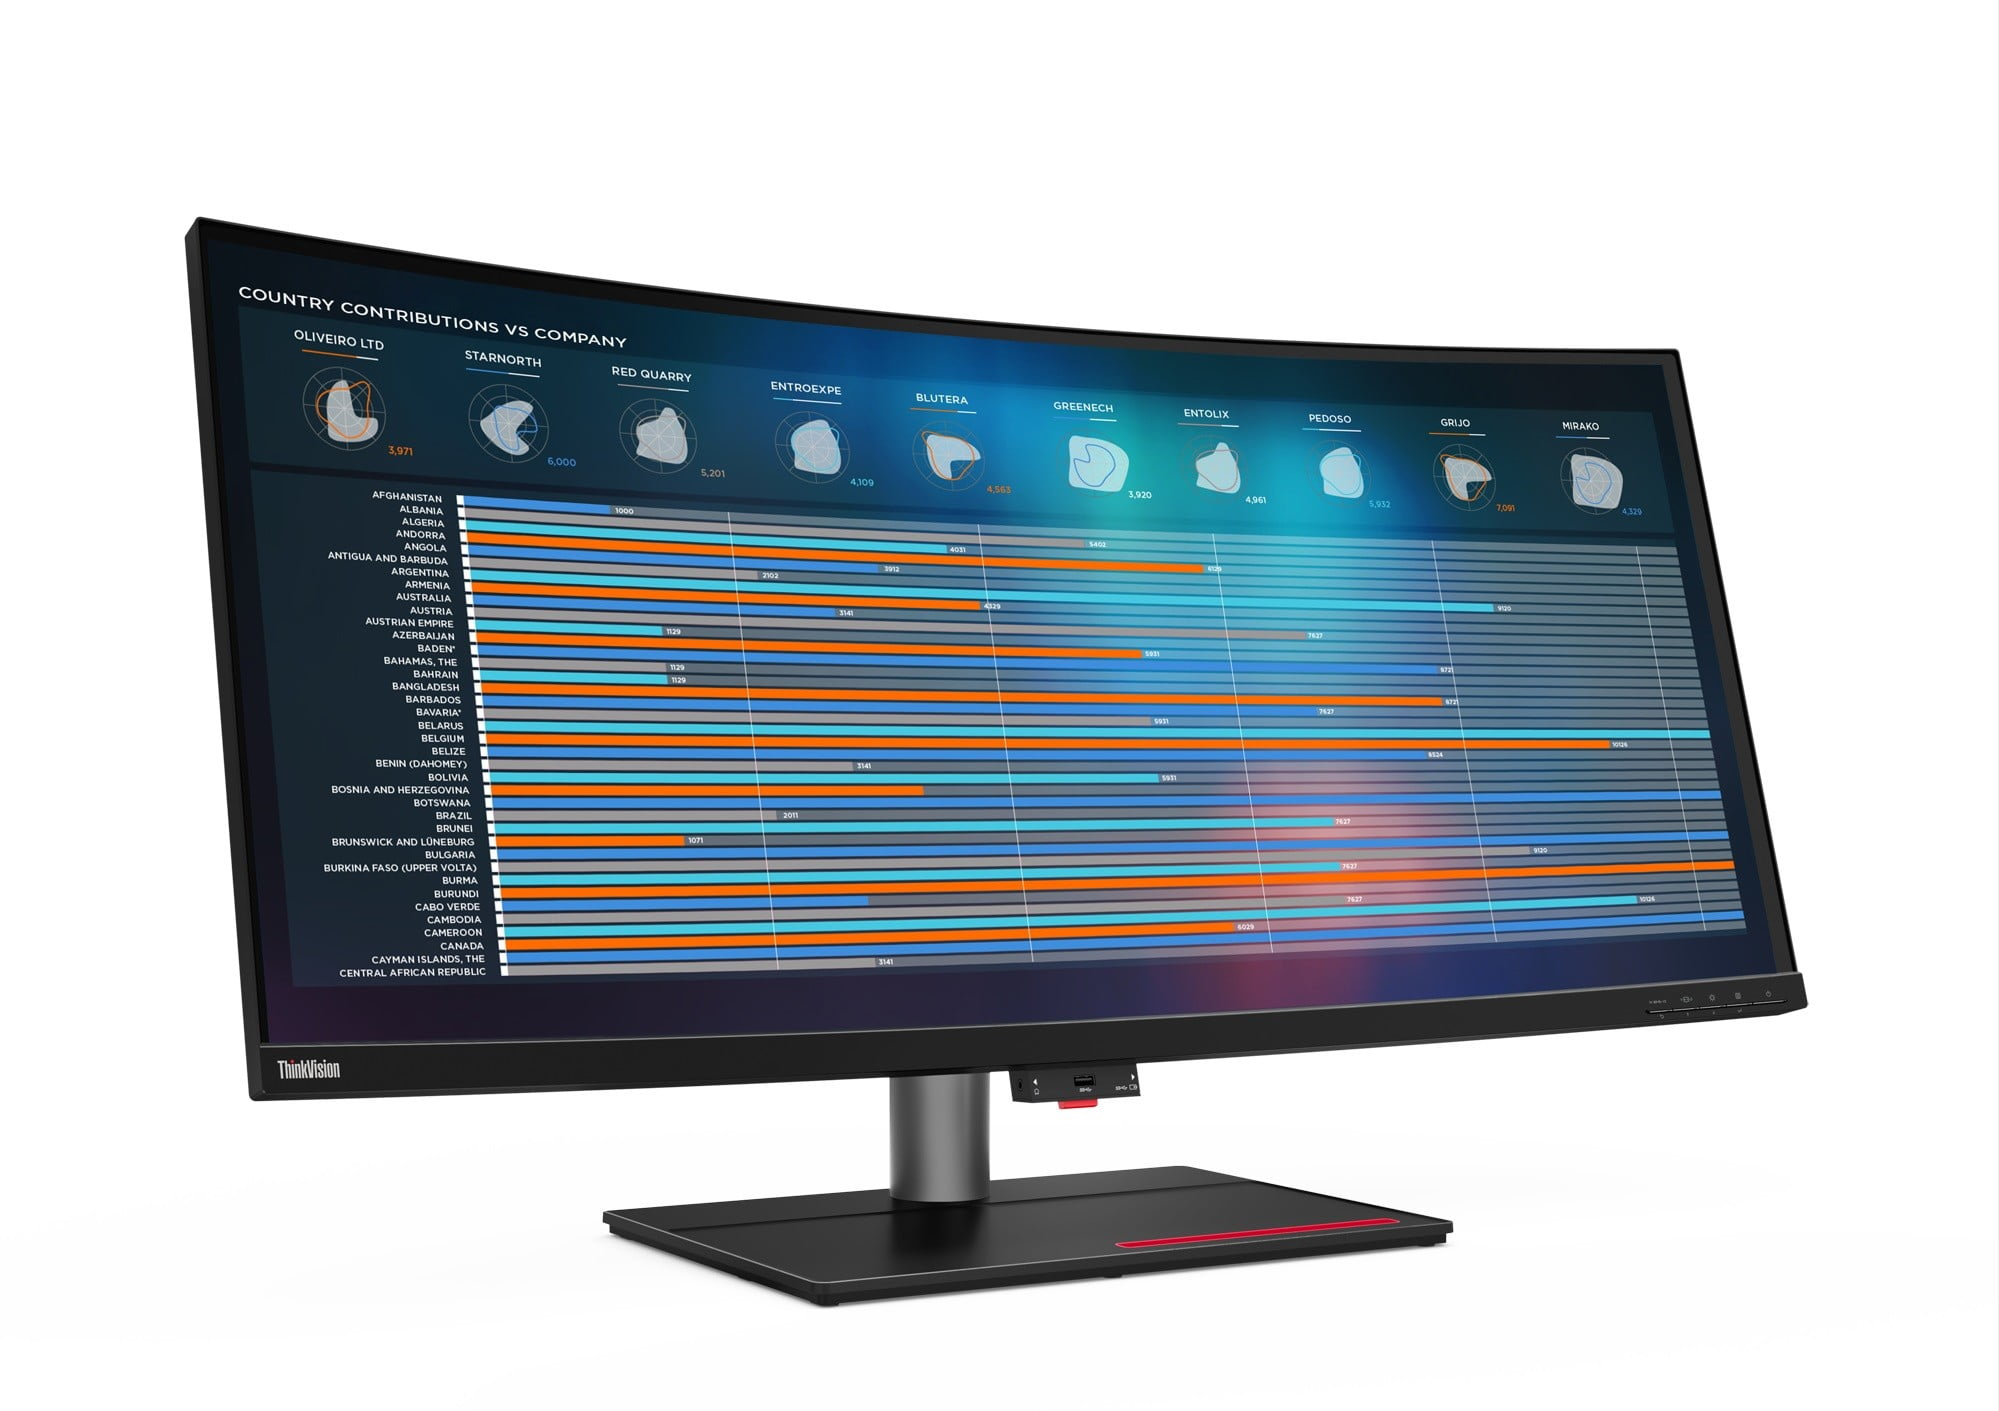 Lenovo's ThinkVision P40w is the world's first Thunderbolt 4 monitor